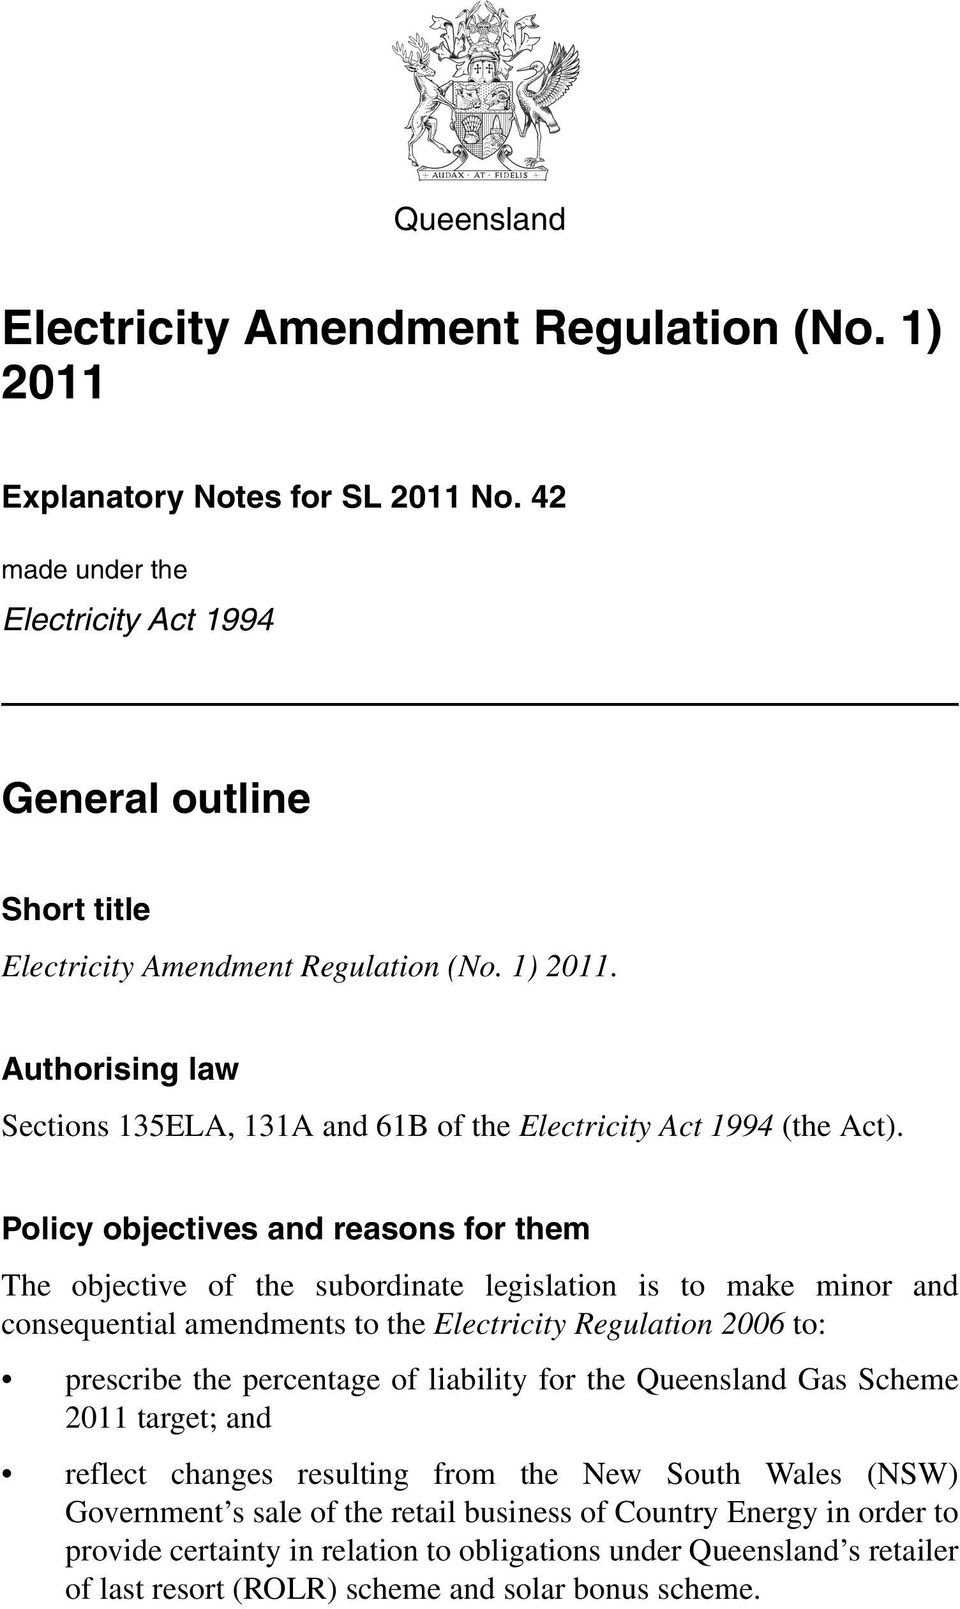 Policy objectives and reasons for them The objective of the subordinate legislation is to make minor and consequential amendments to the Electricity Regulation 2006 to: prescribe the percentage of